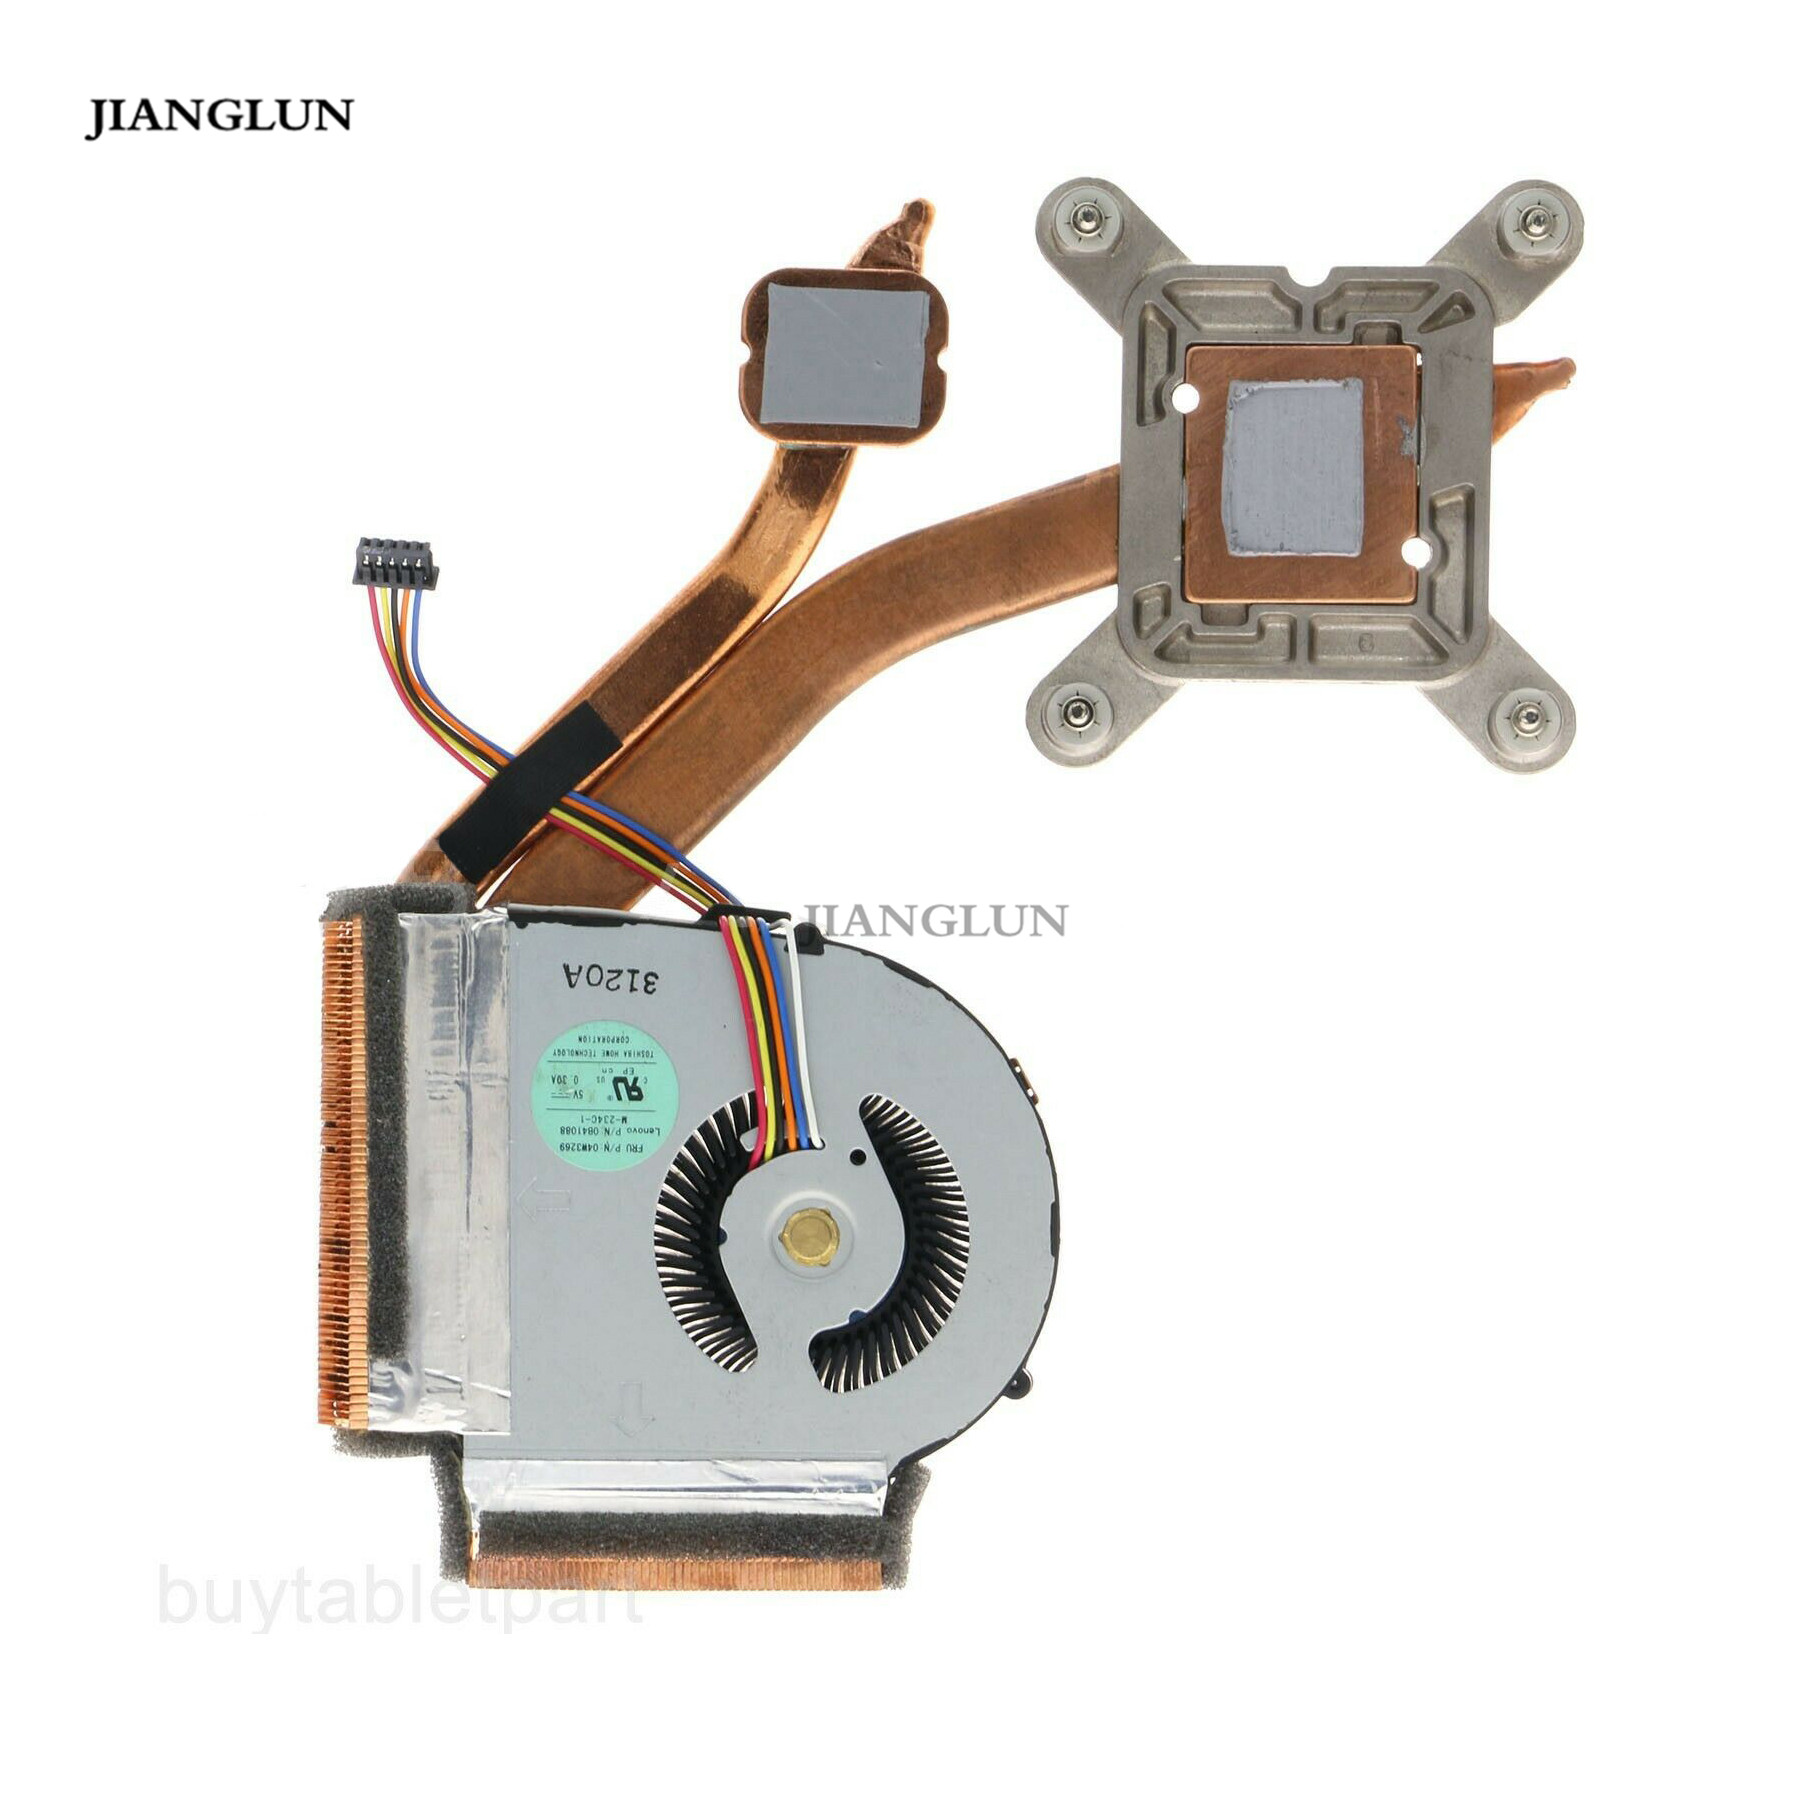 JIANGLUN Laptop CPU Cooling <font><b>Fan</b></font> with Heatsink For Lenovo IBM ThinkPad <font><b>T430</b></font> T430i image